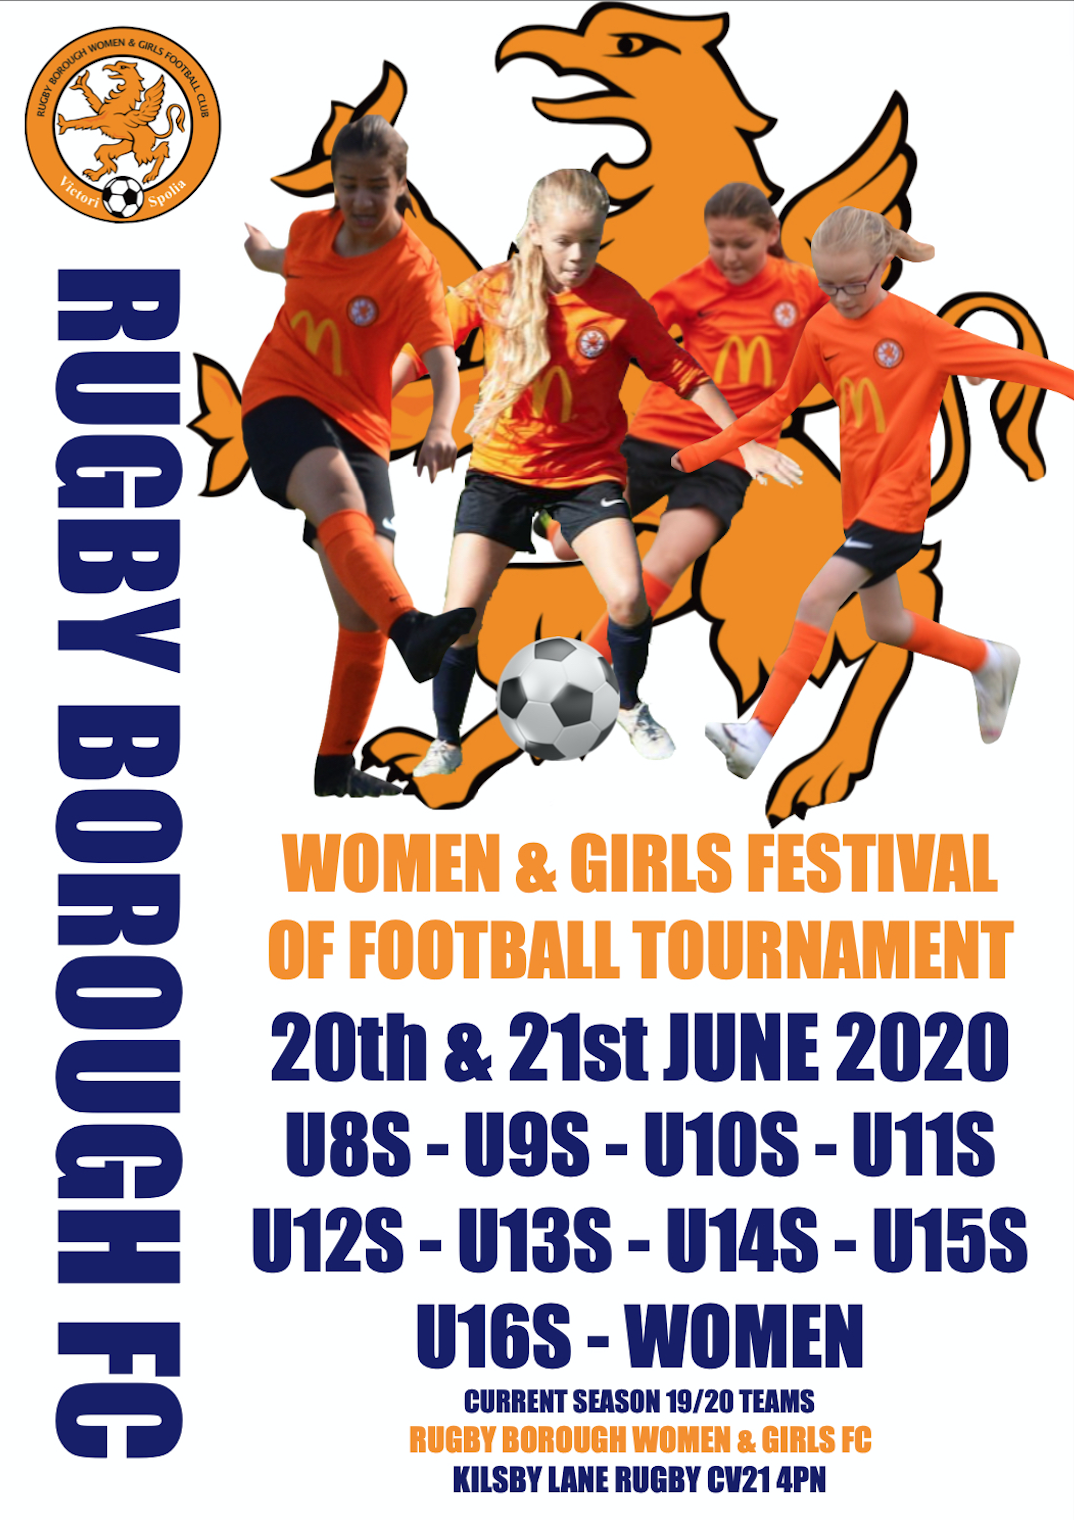 Rugby Borough Women & Girls - Festival of football promo